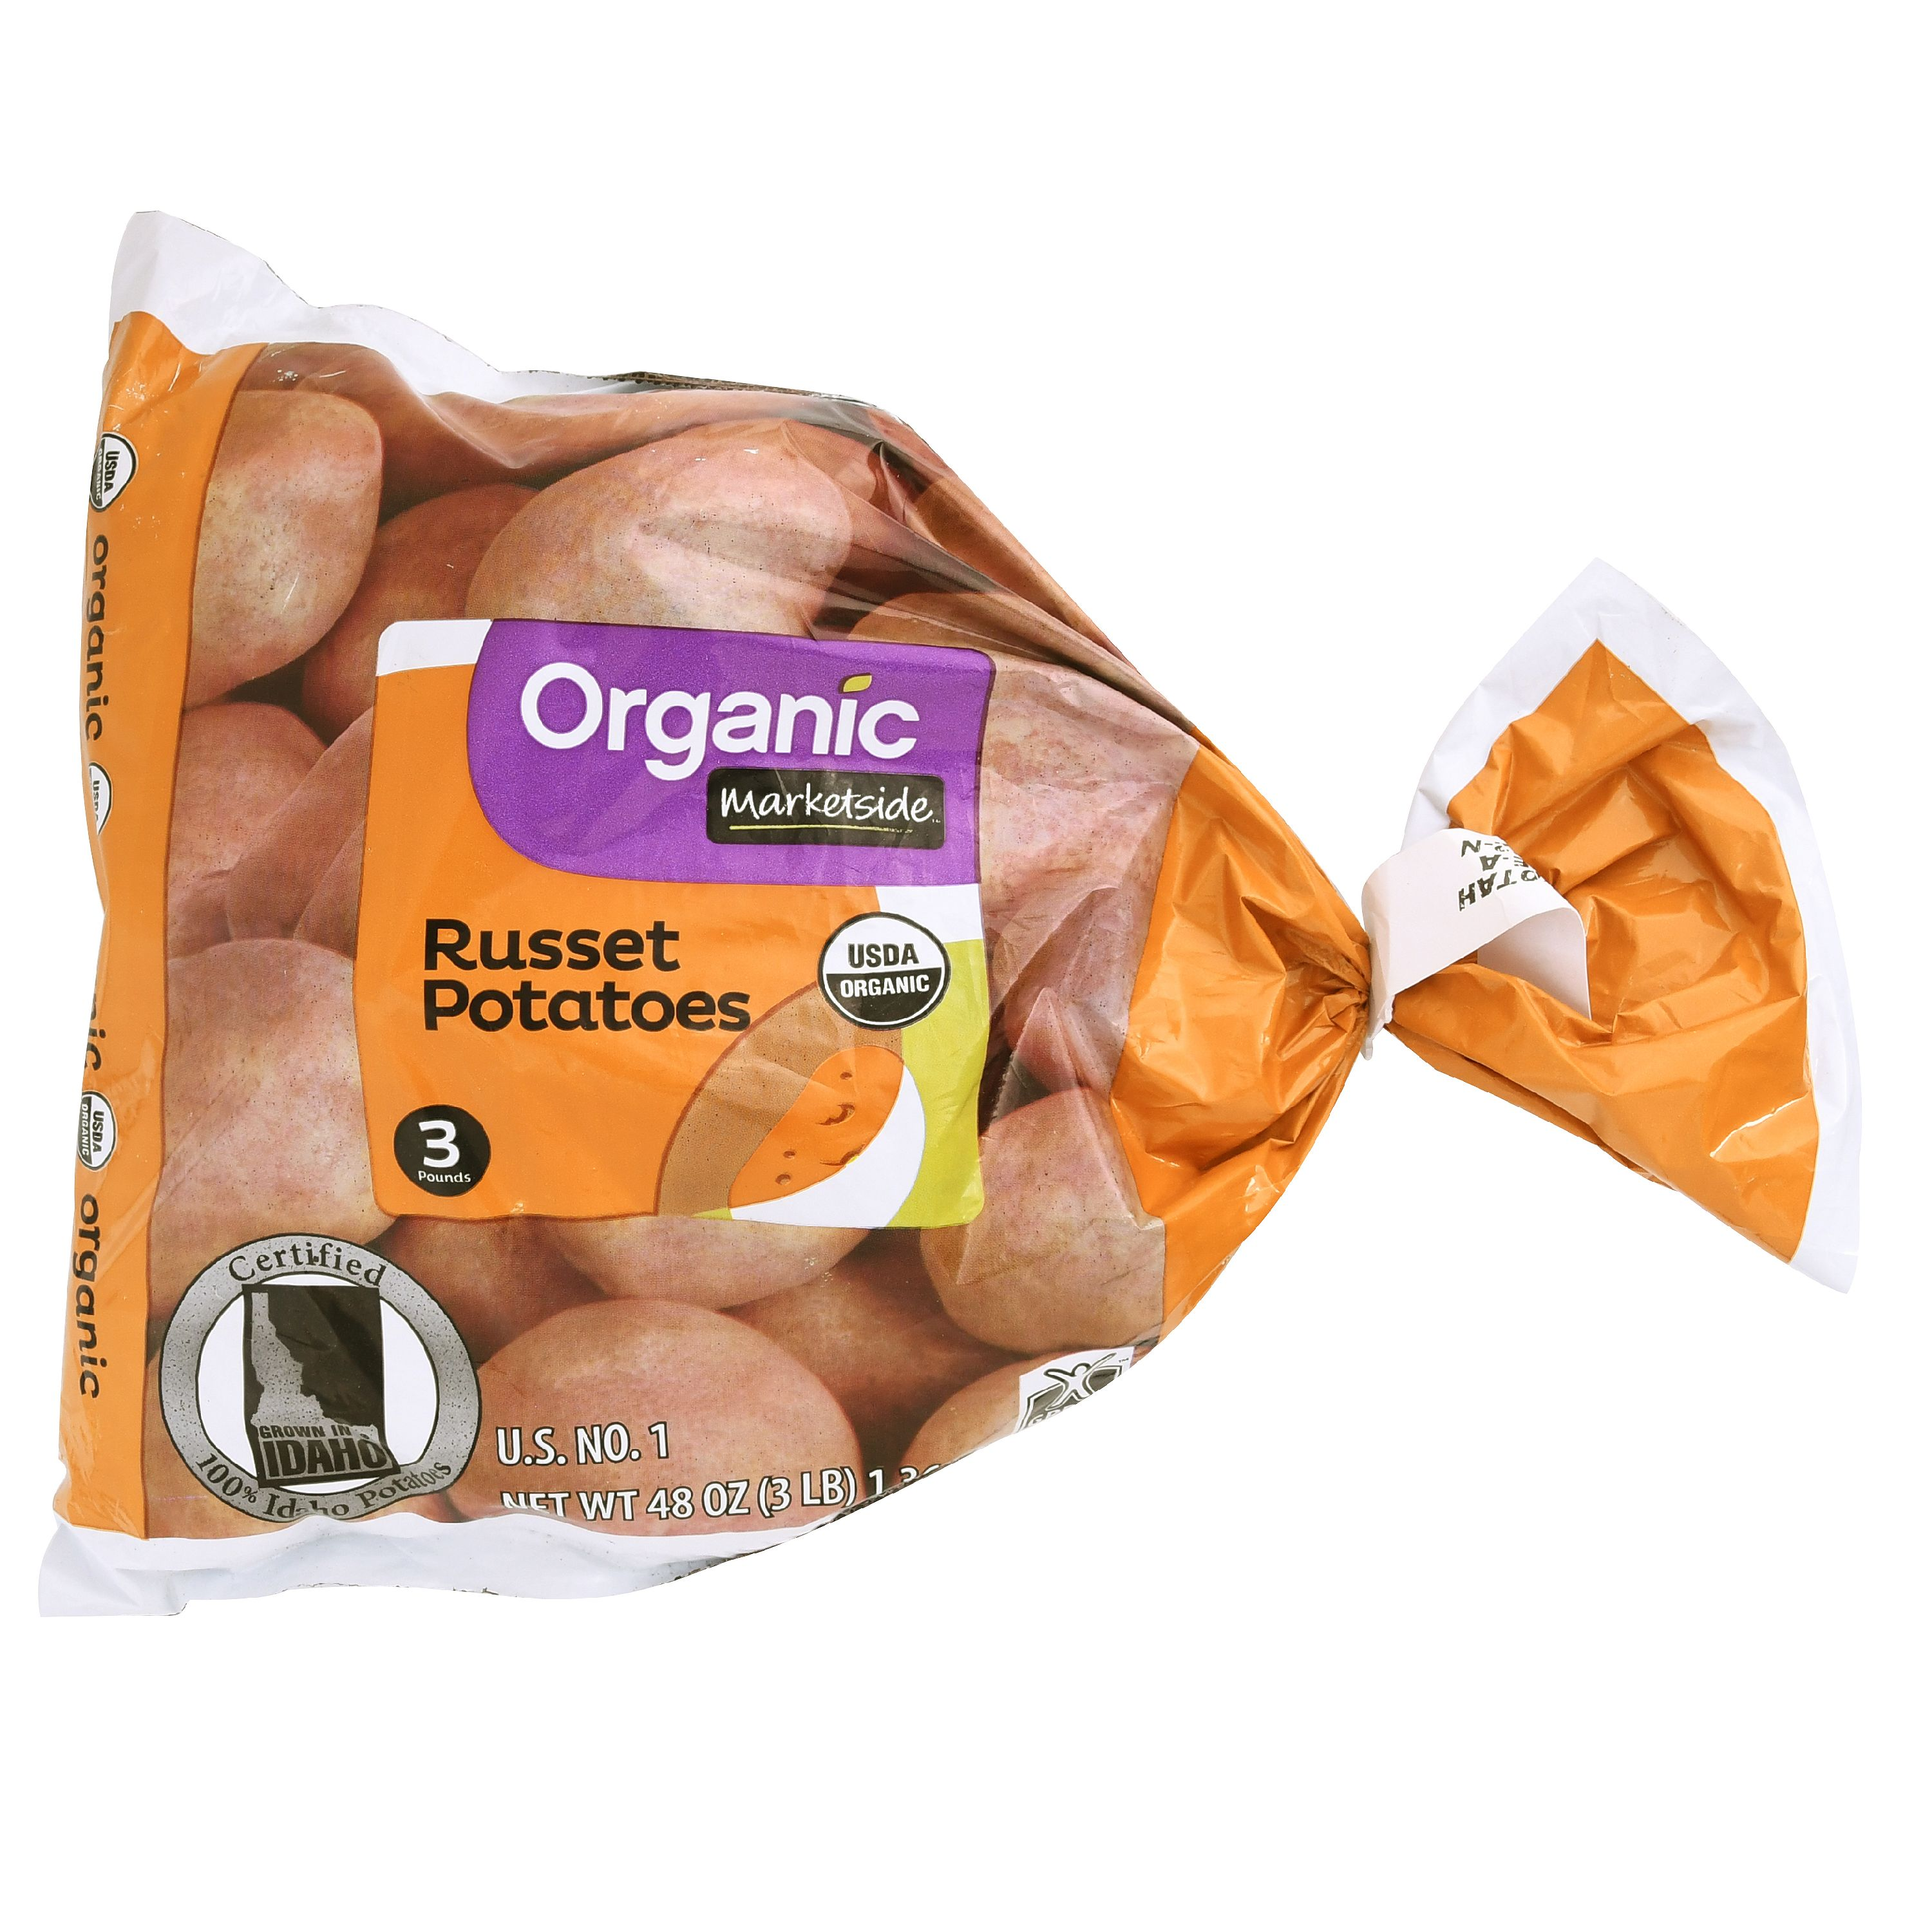 Marketside Organic Russet Potatoes, 3 lb Bag